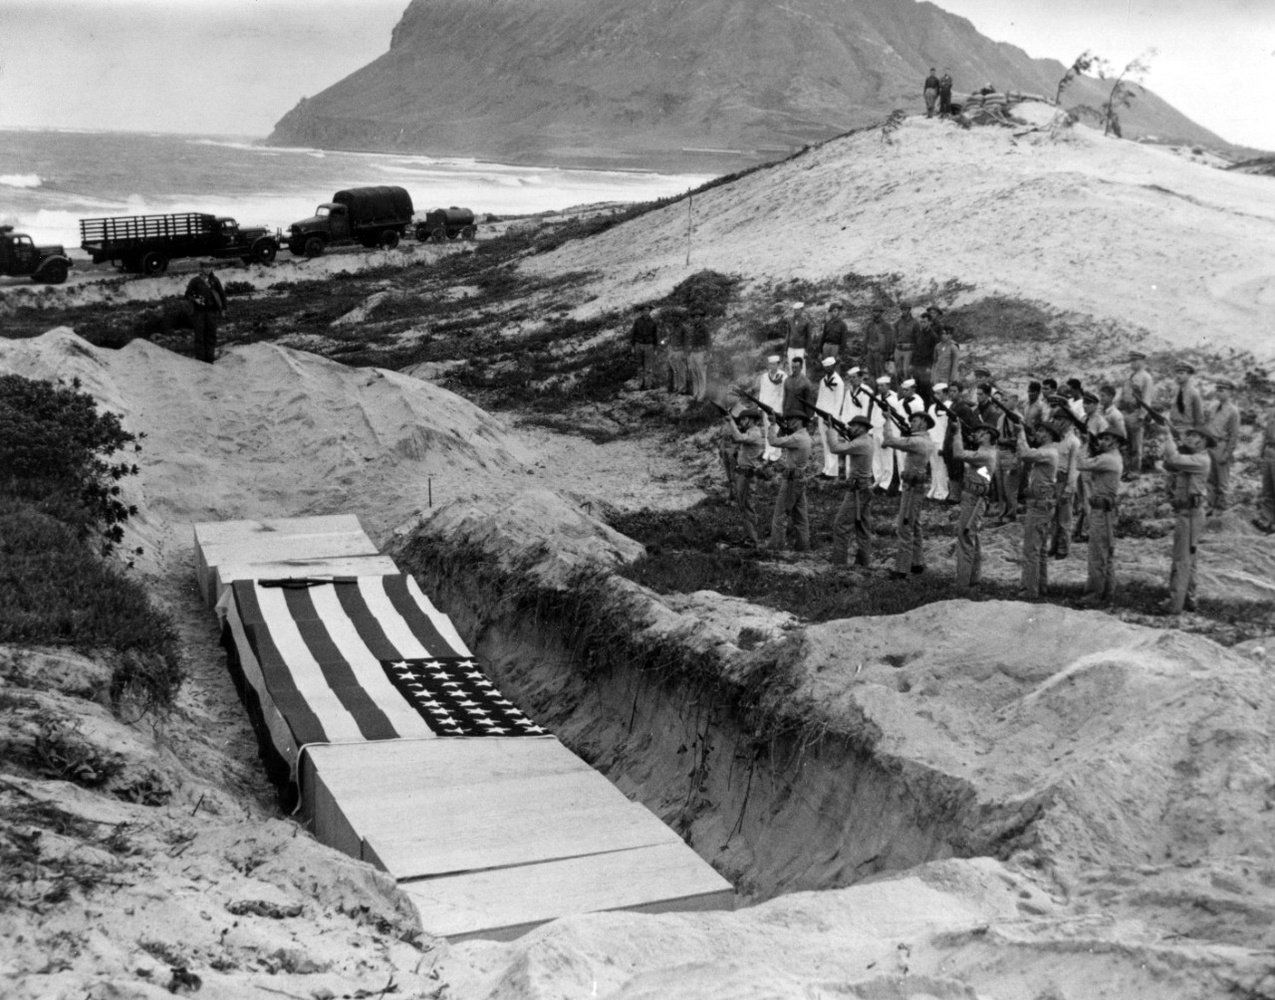 """A Marine rifle squad fires a volley over the bodies of fifteen officers and men killed at Naval Air Station Kaneohe Bay during the Pearl Harbor raid. These burial ceremonies took place on 8 December 1941, the day after the attack."""